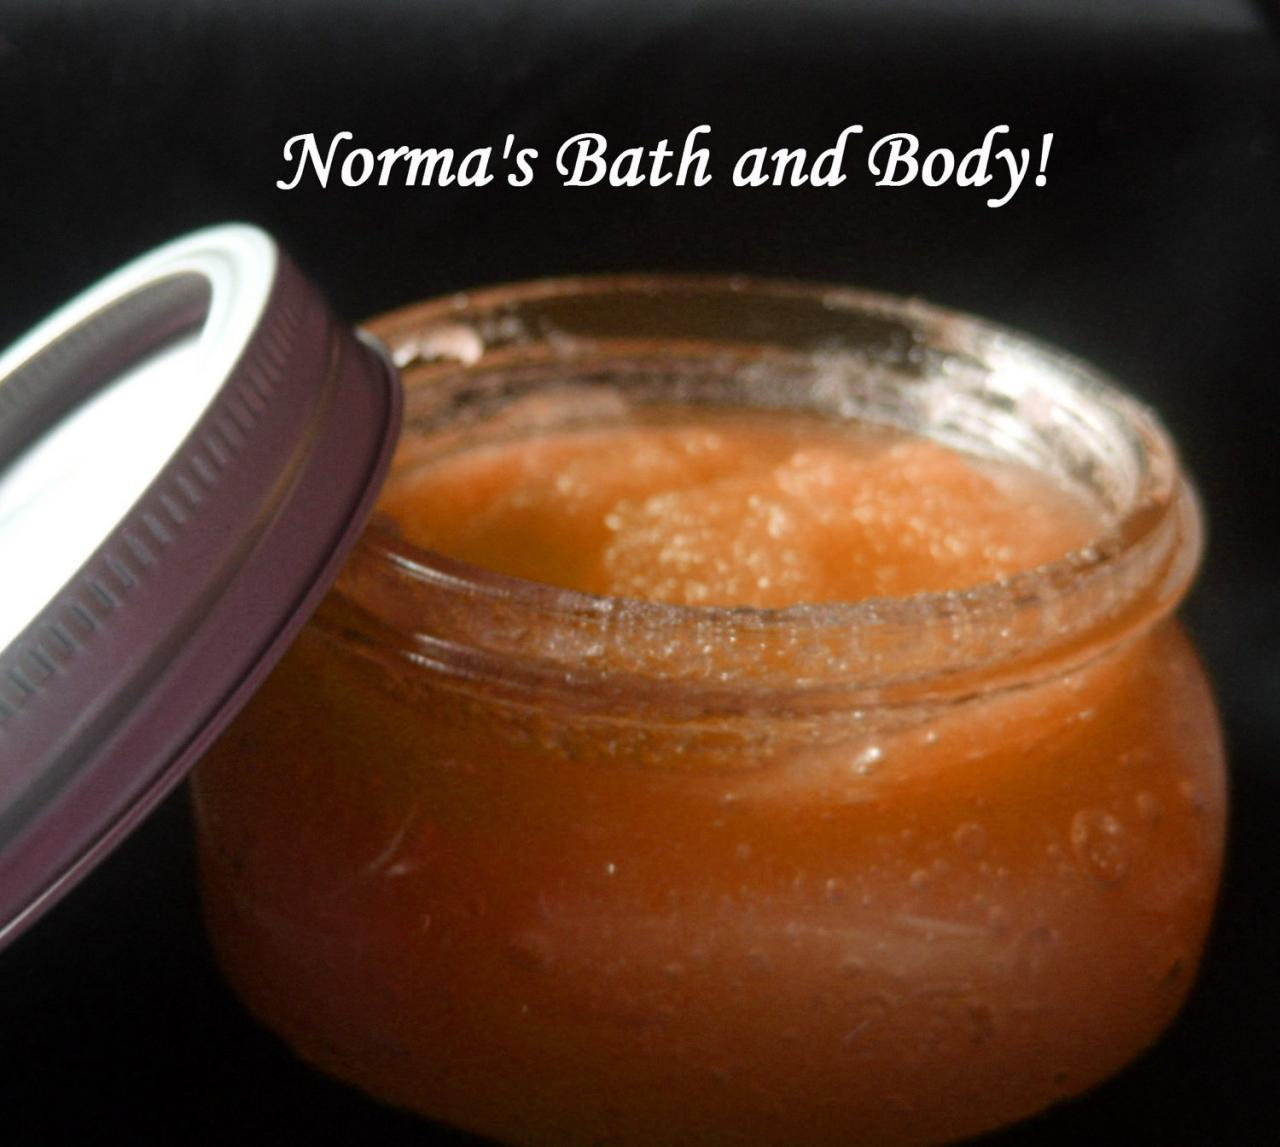 pumpkin pie sugar body scrub, body scrub, sugar scrub, pumpkin pie, exfoliators, beauty, bath, body